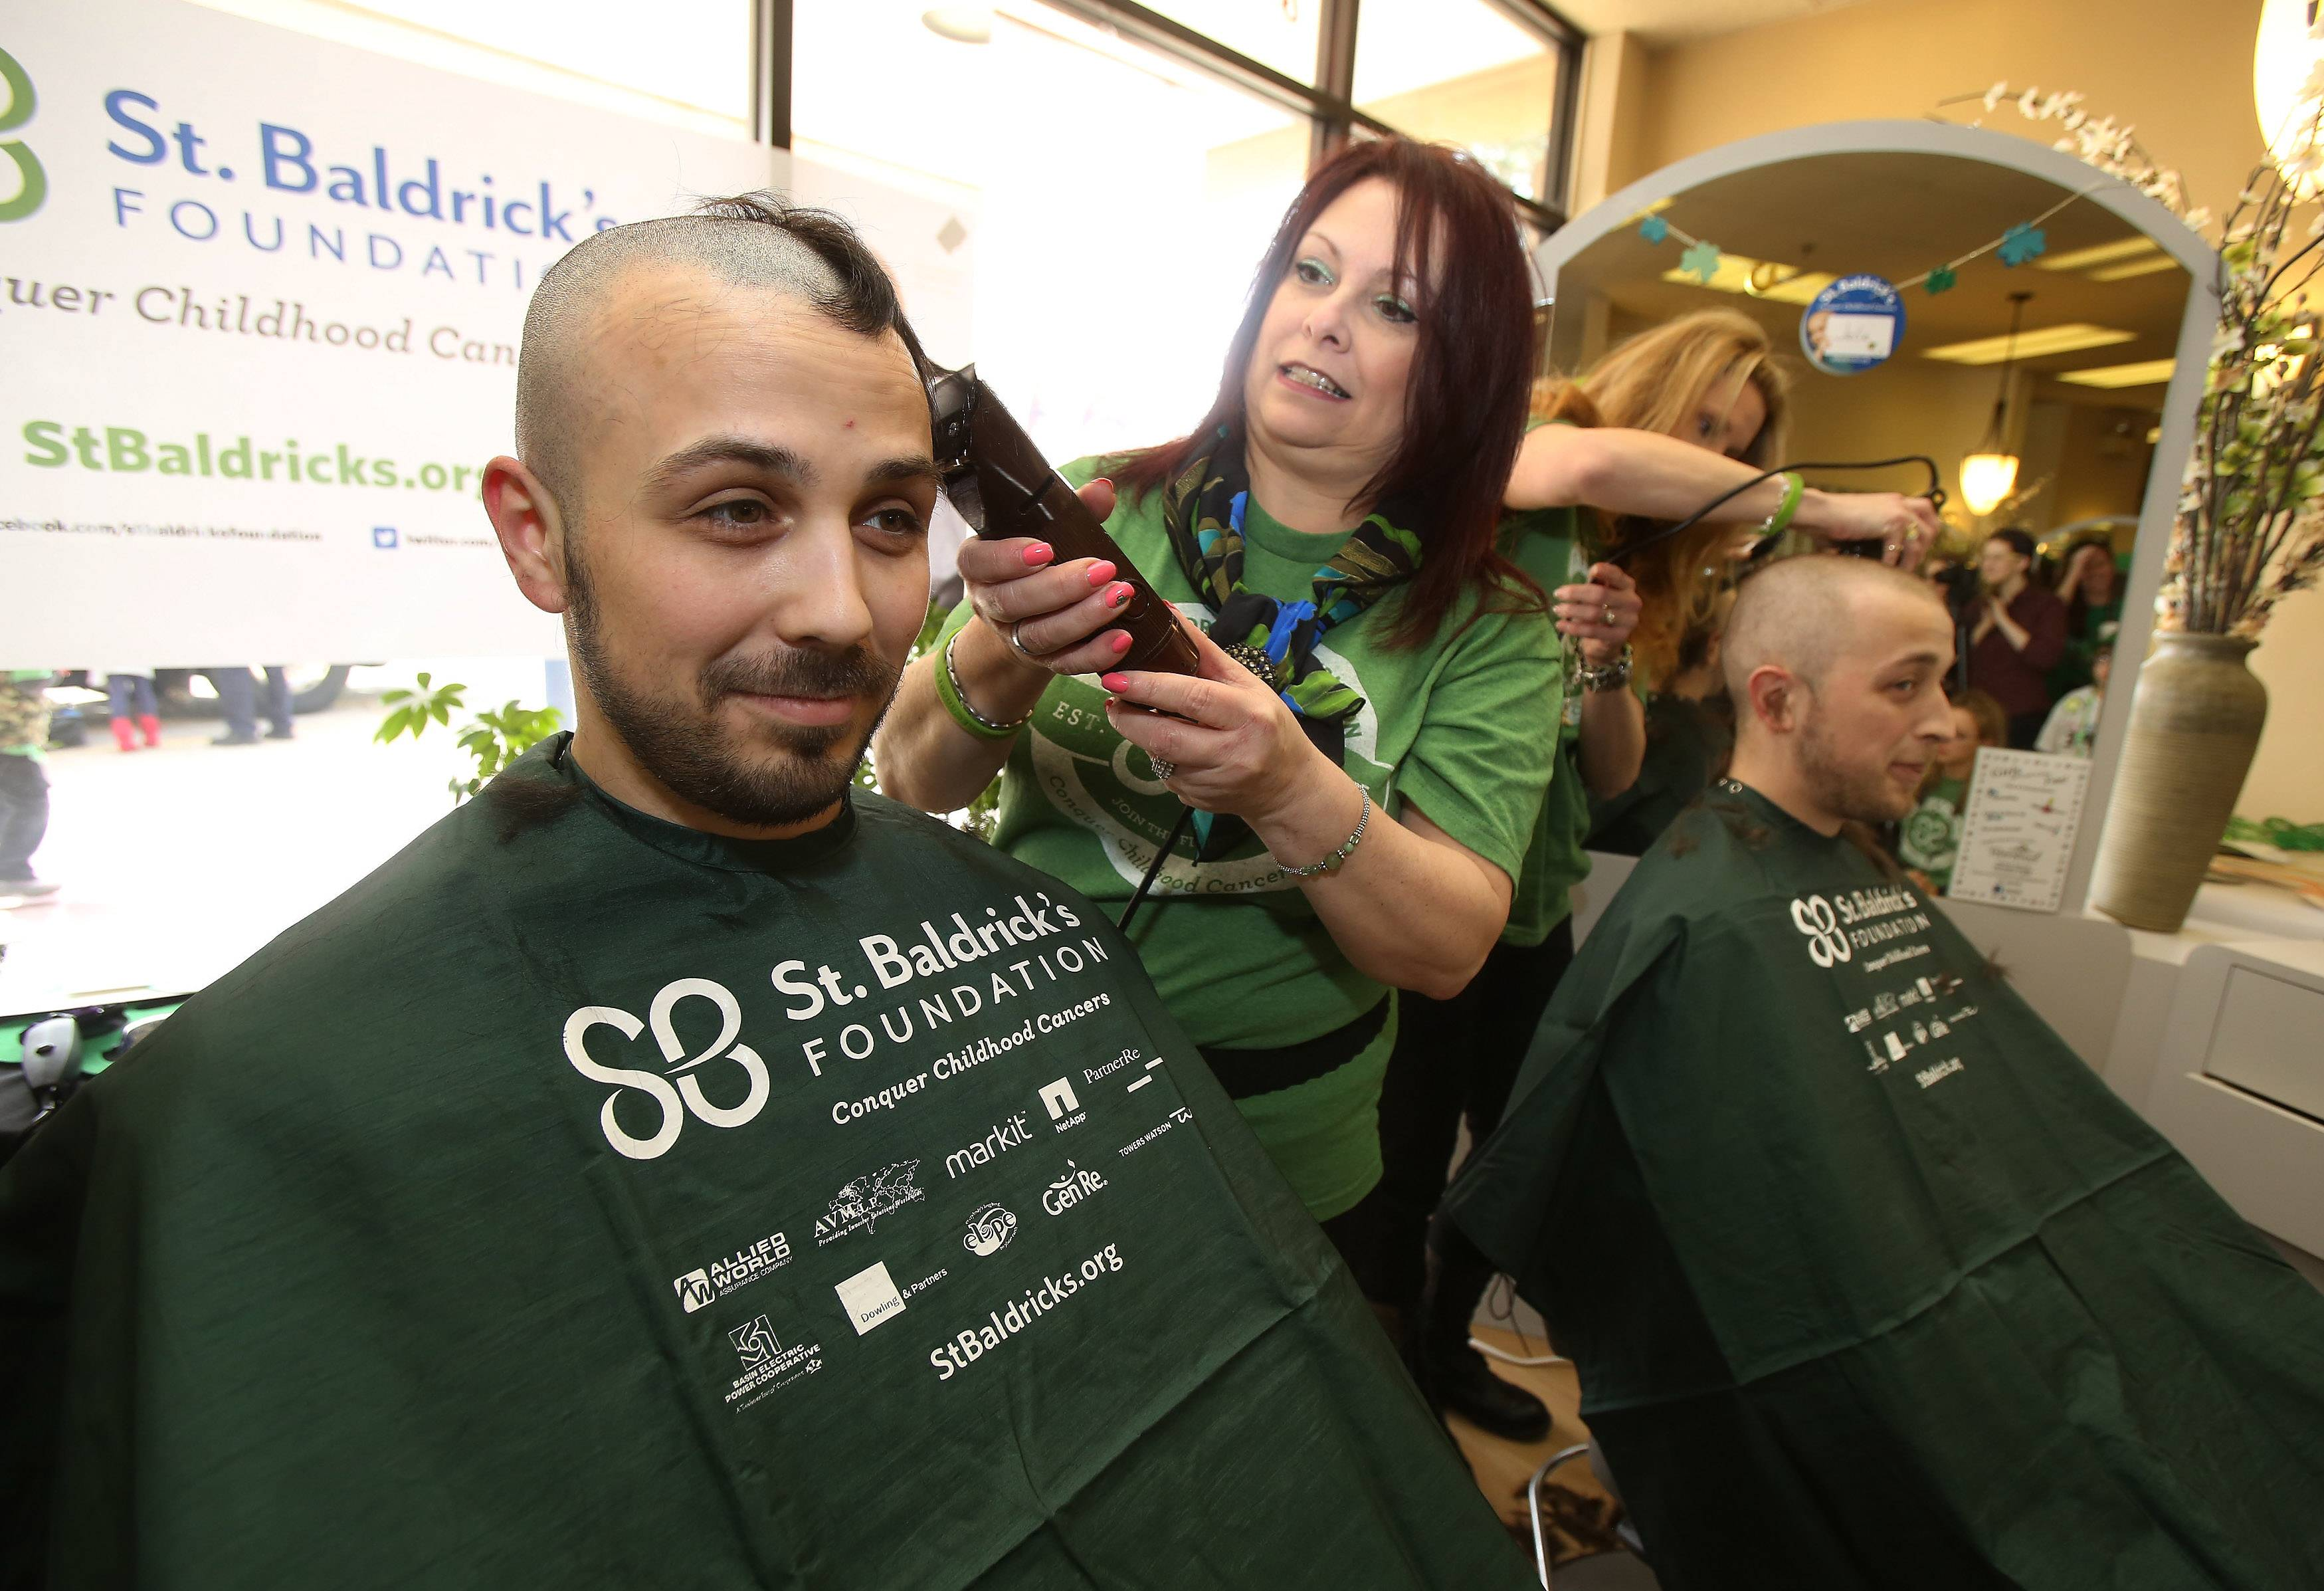 Brothers Chris, left, and Myles Galie of Algonquin have their heads shaved by stylists Mare Cichy and Julia Goings during a St. Baldrick's fundraiser Sunday at International Hair Designs in Lake Zurich. The event was in honor of cancer patient Rosie Colucci, 9, of Palatine.